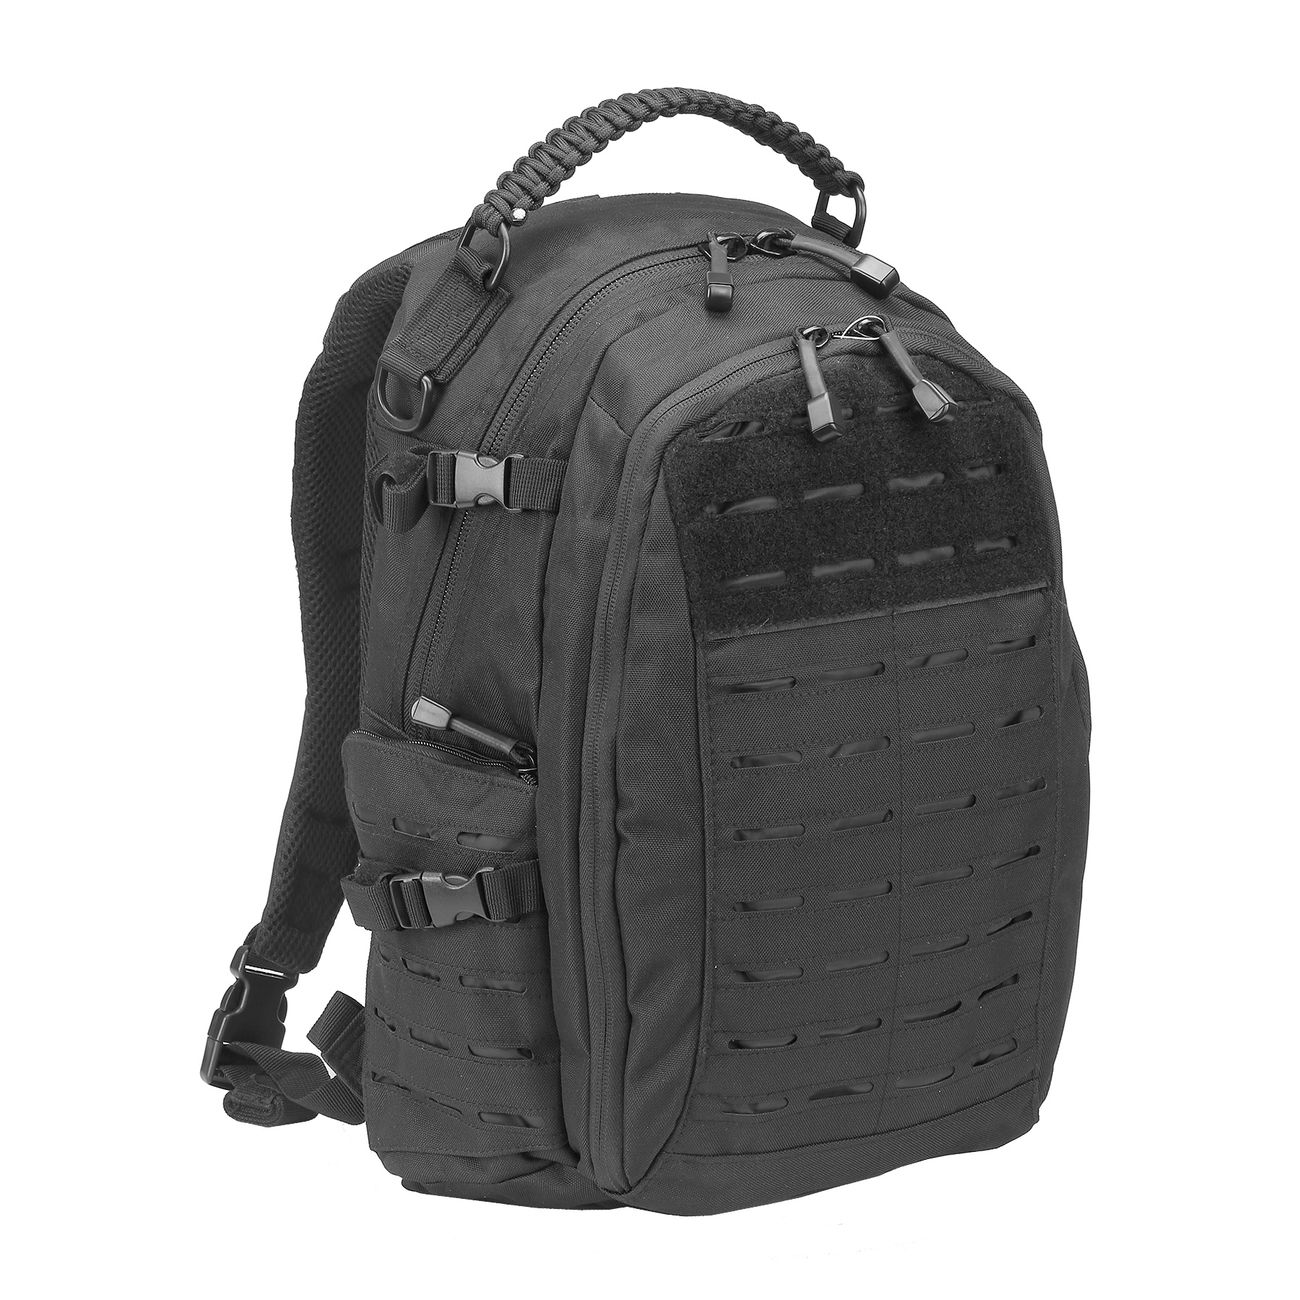 Mil-Tec Rucksack Mission Pack Laser Cut Small schwarz 0